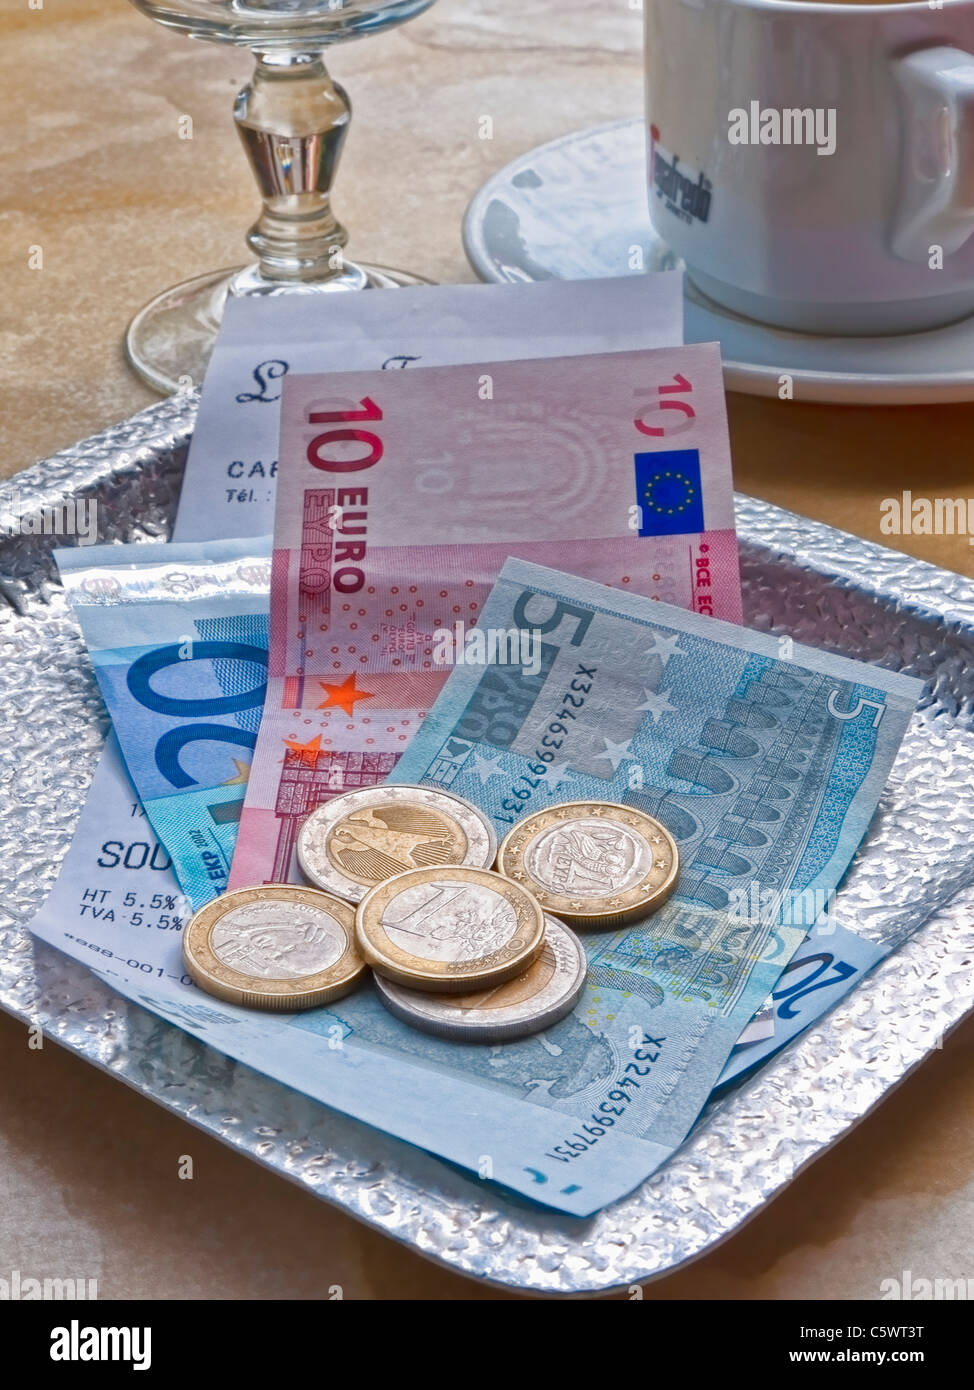 Payment in French euros, Stock Photo